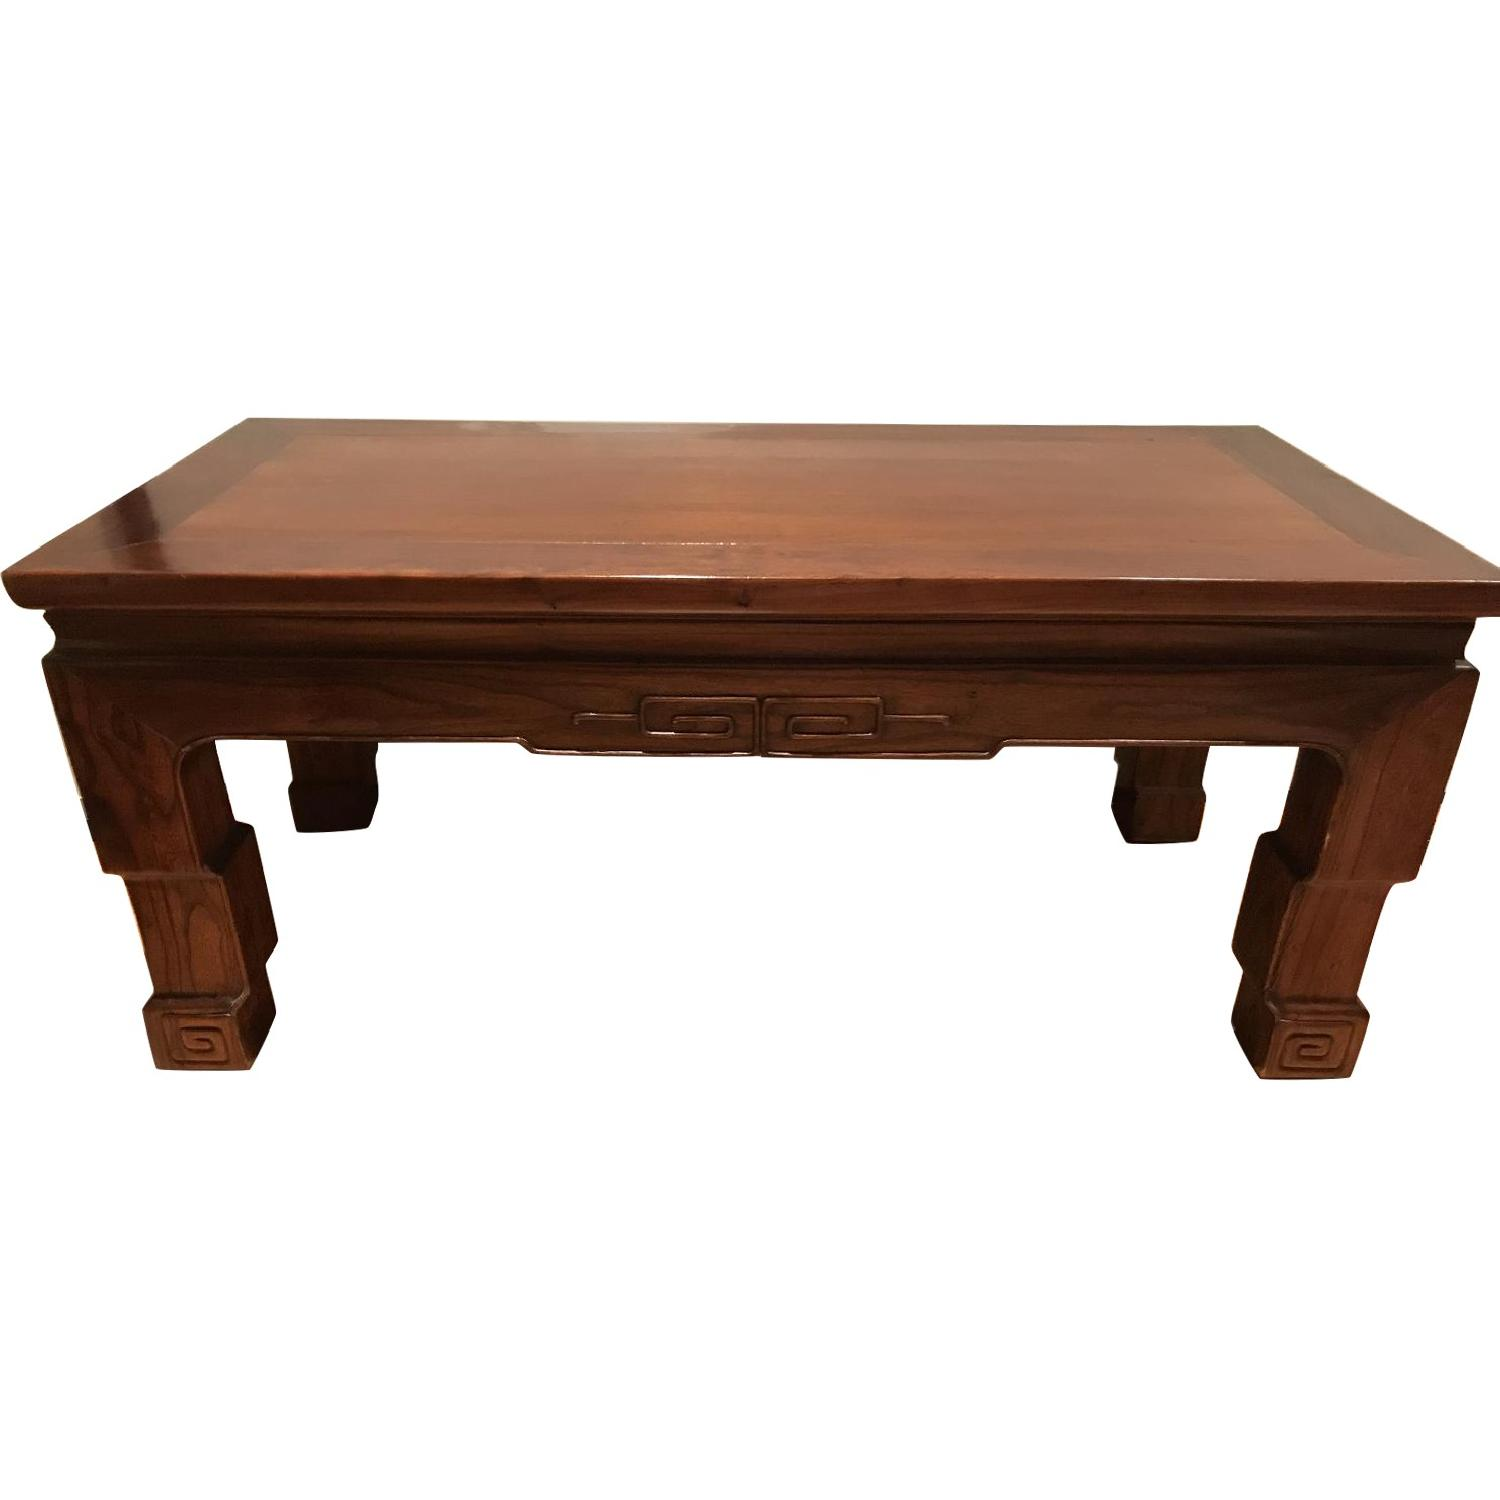 Antique Dark Wood Coffee Table